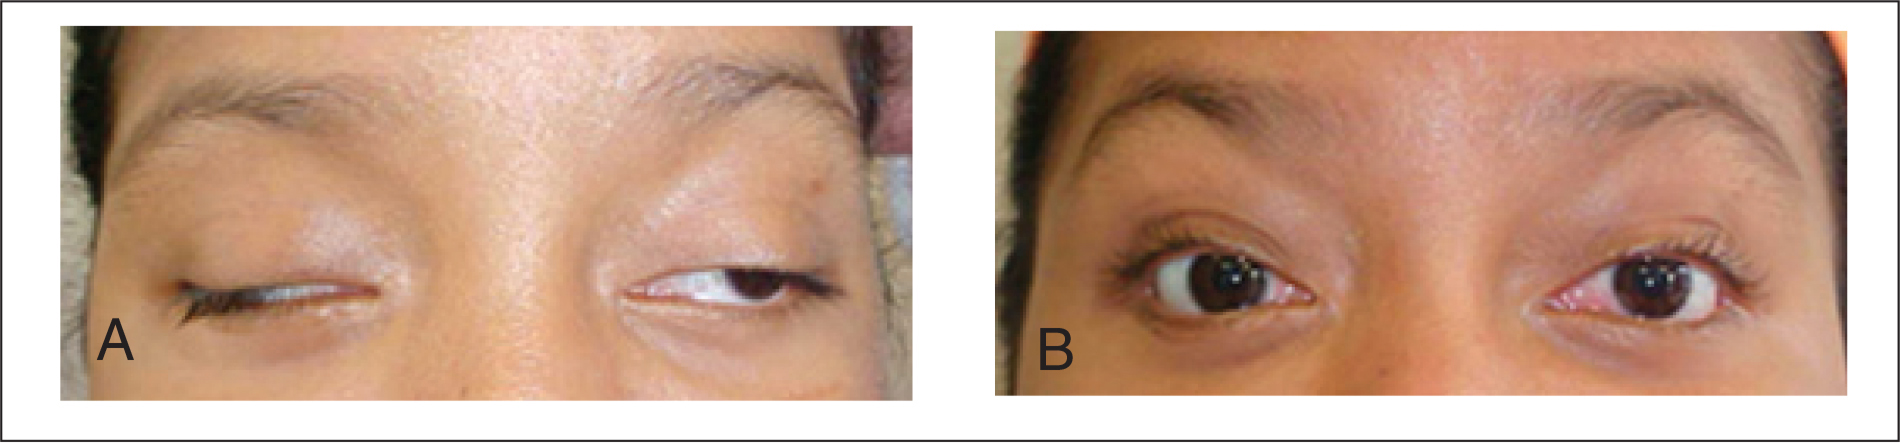 A 14-year-old girl with complete bilateral III nerve palsy (A) before and (B) after strabismus surgery and frontalis suspension with braided polyester (48 months' follow-up).